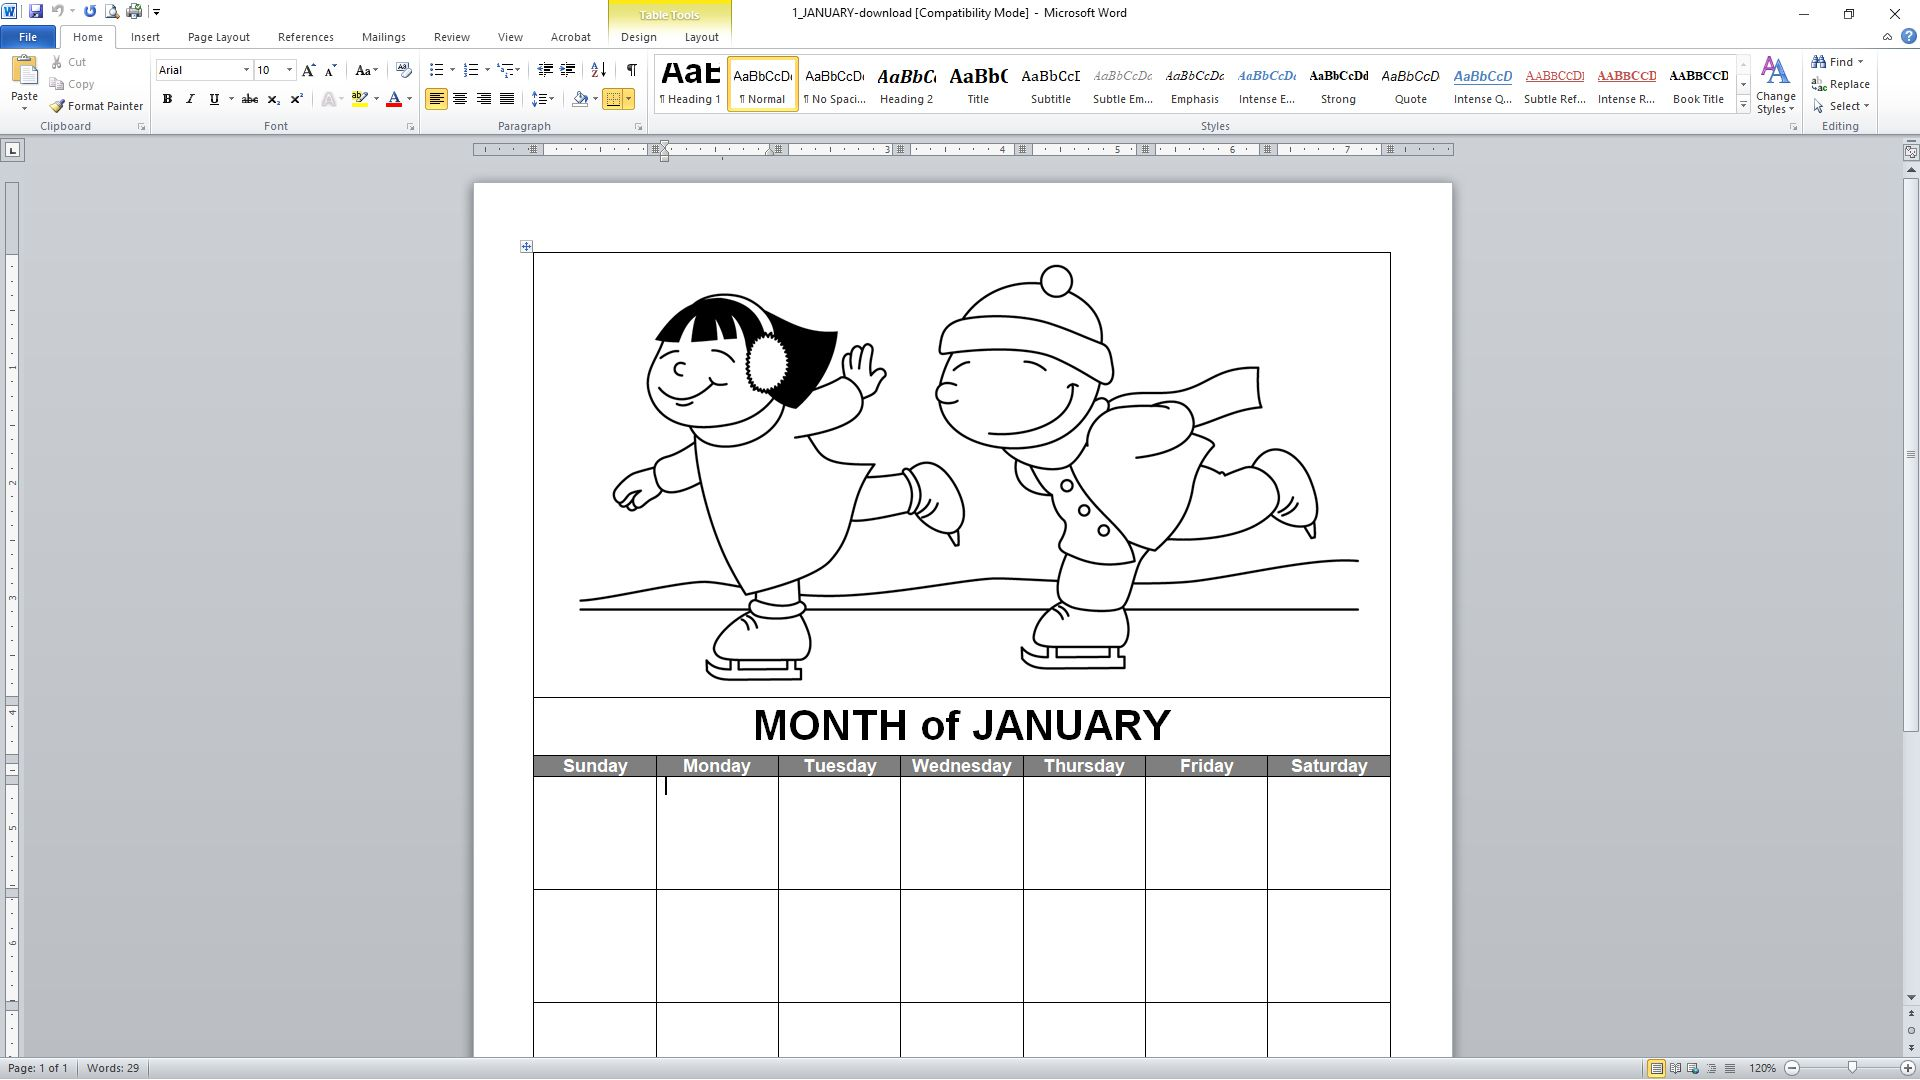 89 free calendar templates for 2018 and beyond